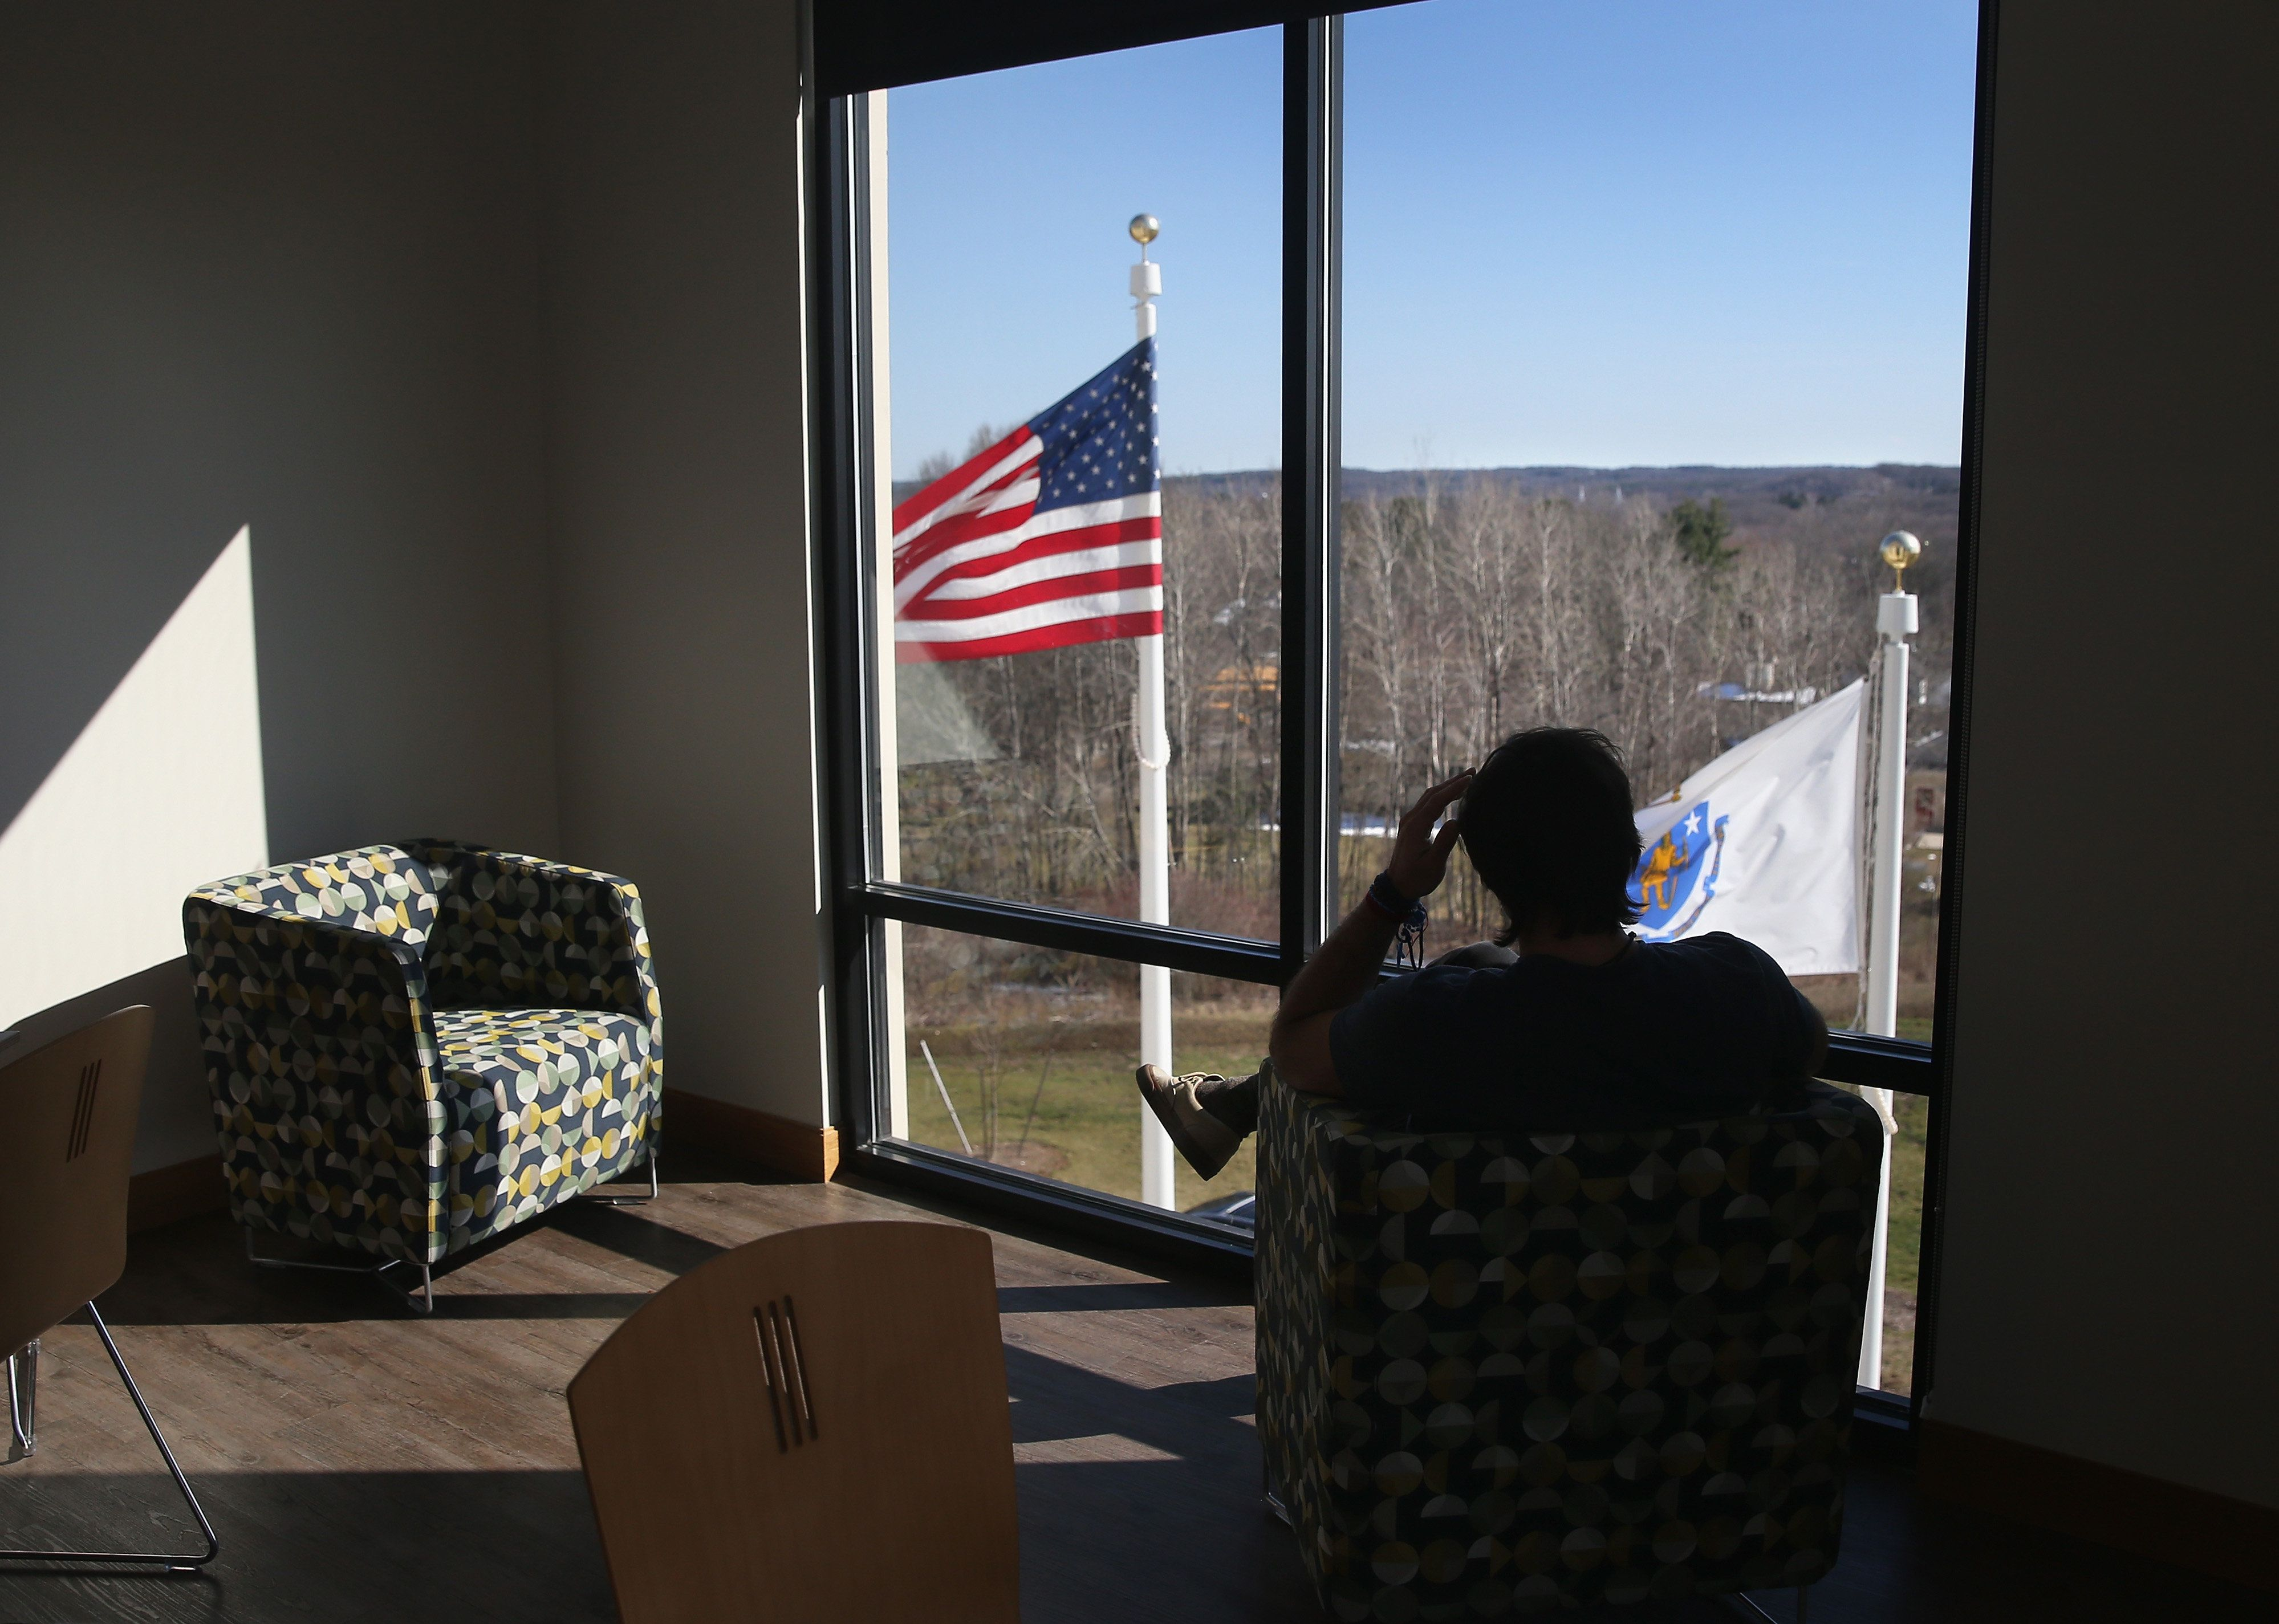 WESTBOROUGH, MA - MARCH 22:  A drug addict in recovery looks out from a substance abuse treatment center on March 22, 2016 in Westborough, MA. The new 100-bed residential rehab center, run by Spectrum Health Systems, is expanding staff, as communities across New England are struggling with the unprecidented heroin and opioid pain pill epidemic. On March 15, the U.S. Centers for Disease Control (CDC), announced guidelines for doctors to reduce the amount of opioid painkillers prescribed nationwide, in an effort to curb the epidemic. The CDC estimates that most new heroin addicts first became hooked on prescription pain medication before graduating to heroin, which is stronger and cheaper.  (Photo by John Moore/Getty Images)